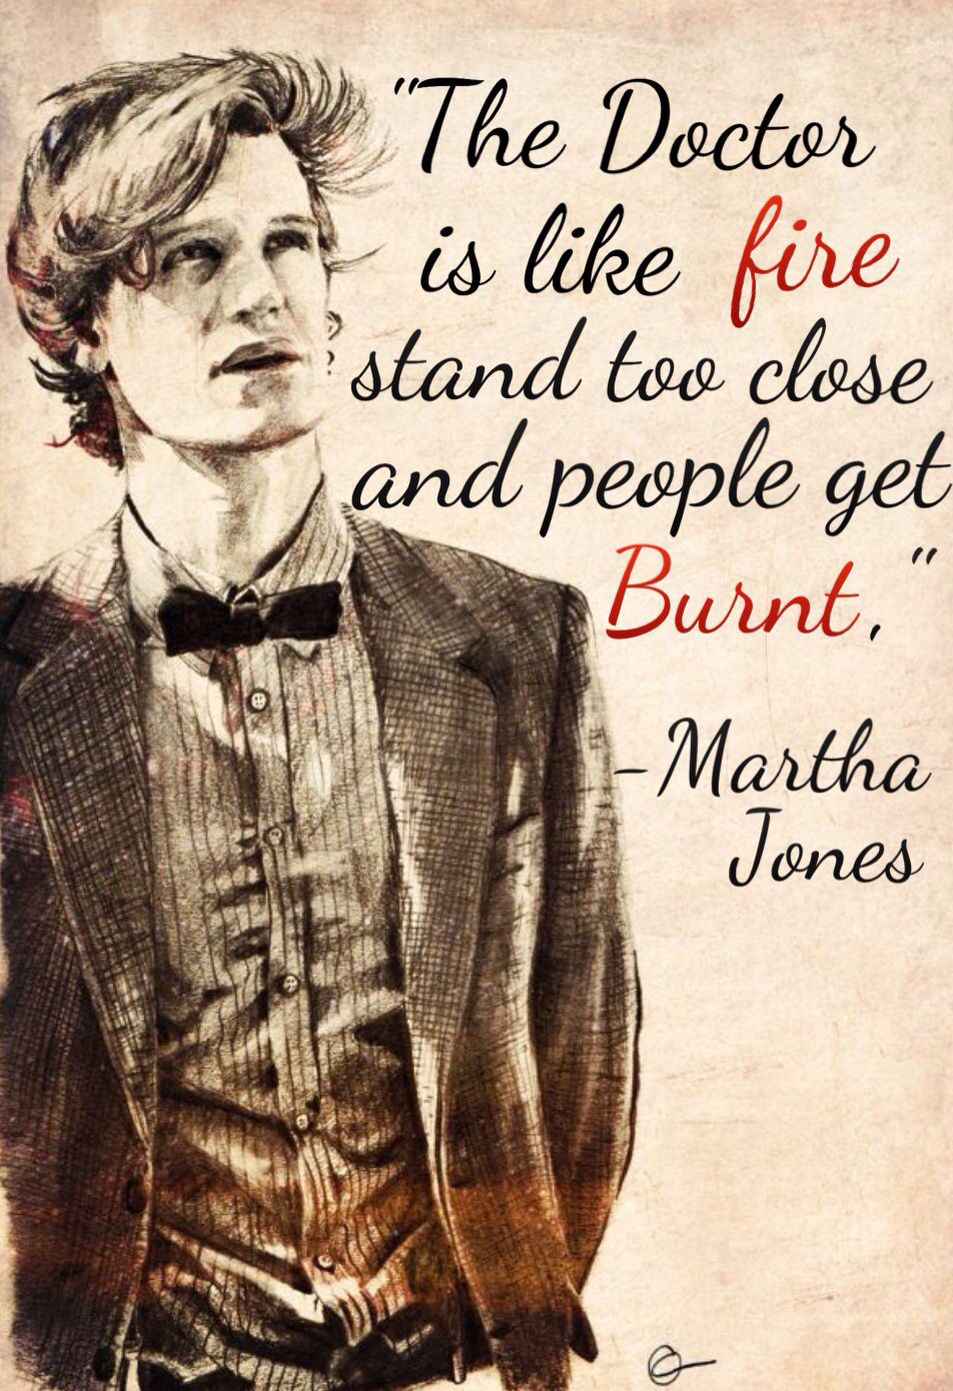 """""""The Doctor is like fire, stand too close and people get burnt,"""" -Martha Jones  I do not own the picture. I just added the text.  #mattsmithforever #marthajones #doctorwho"""